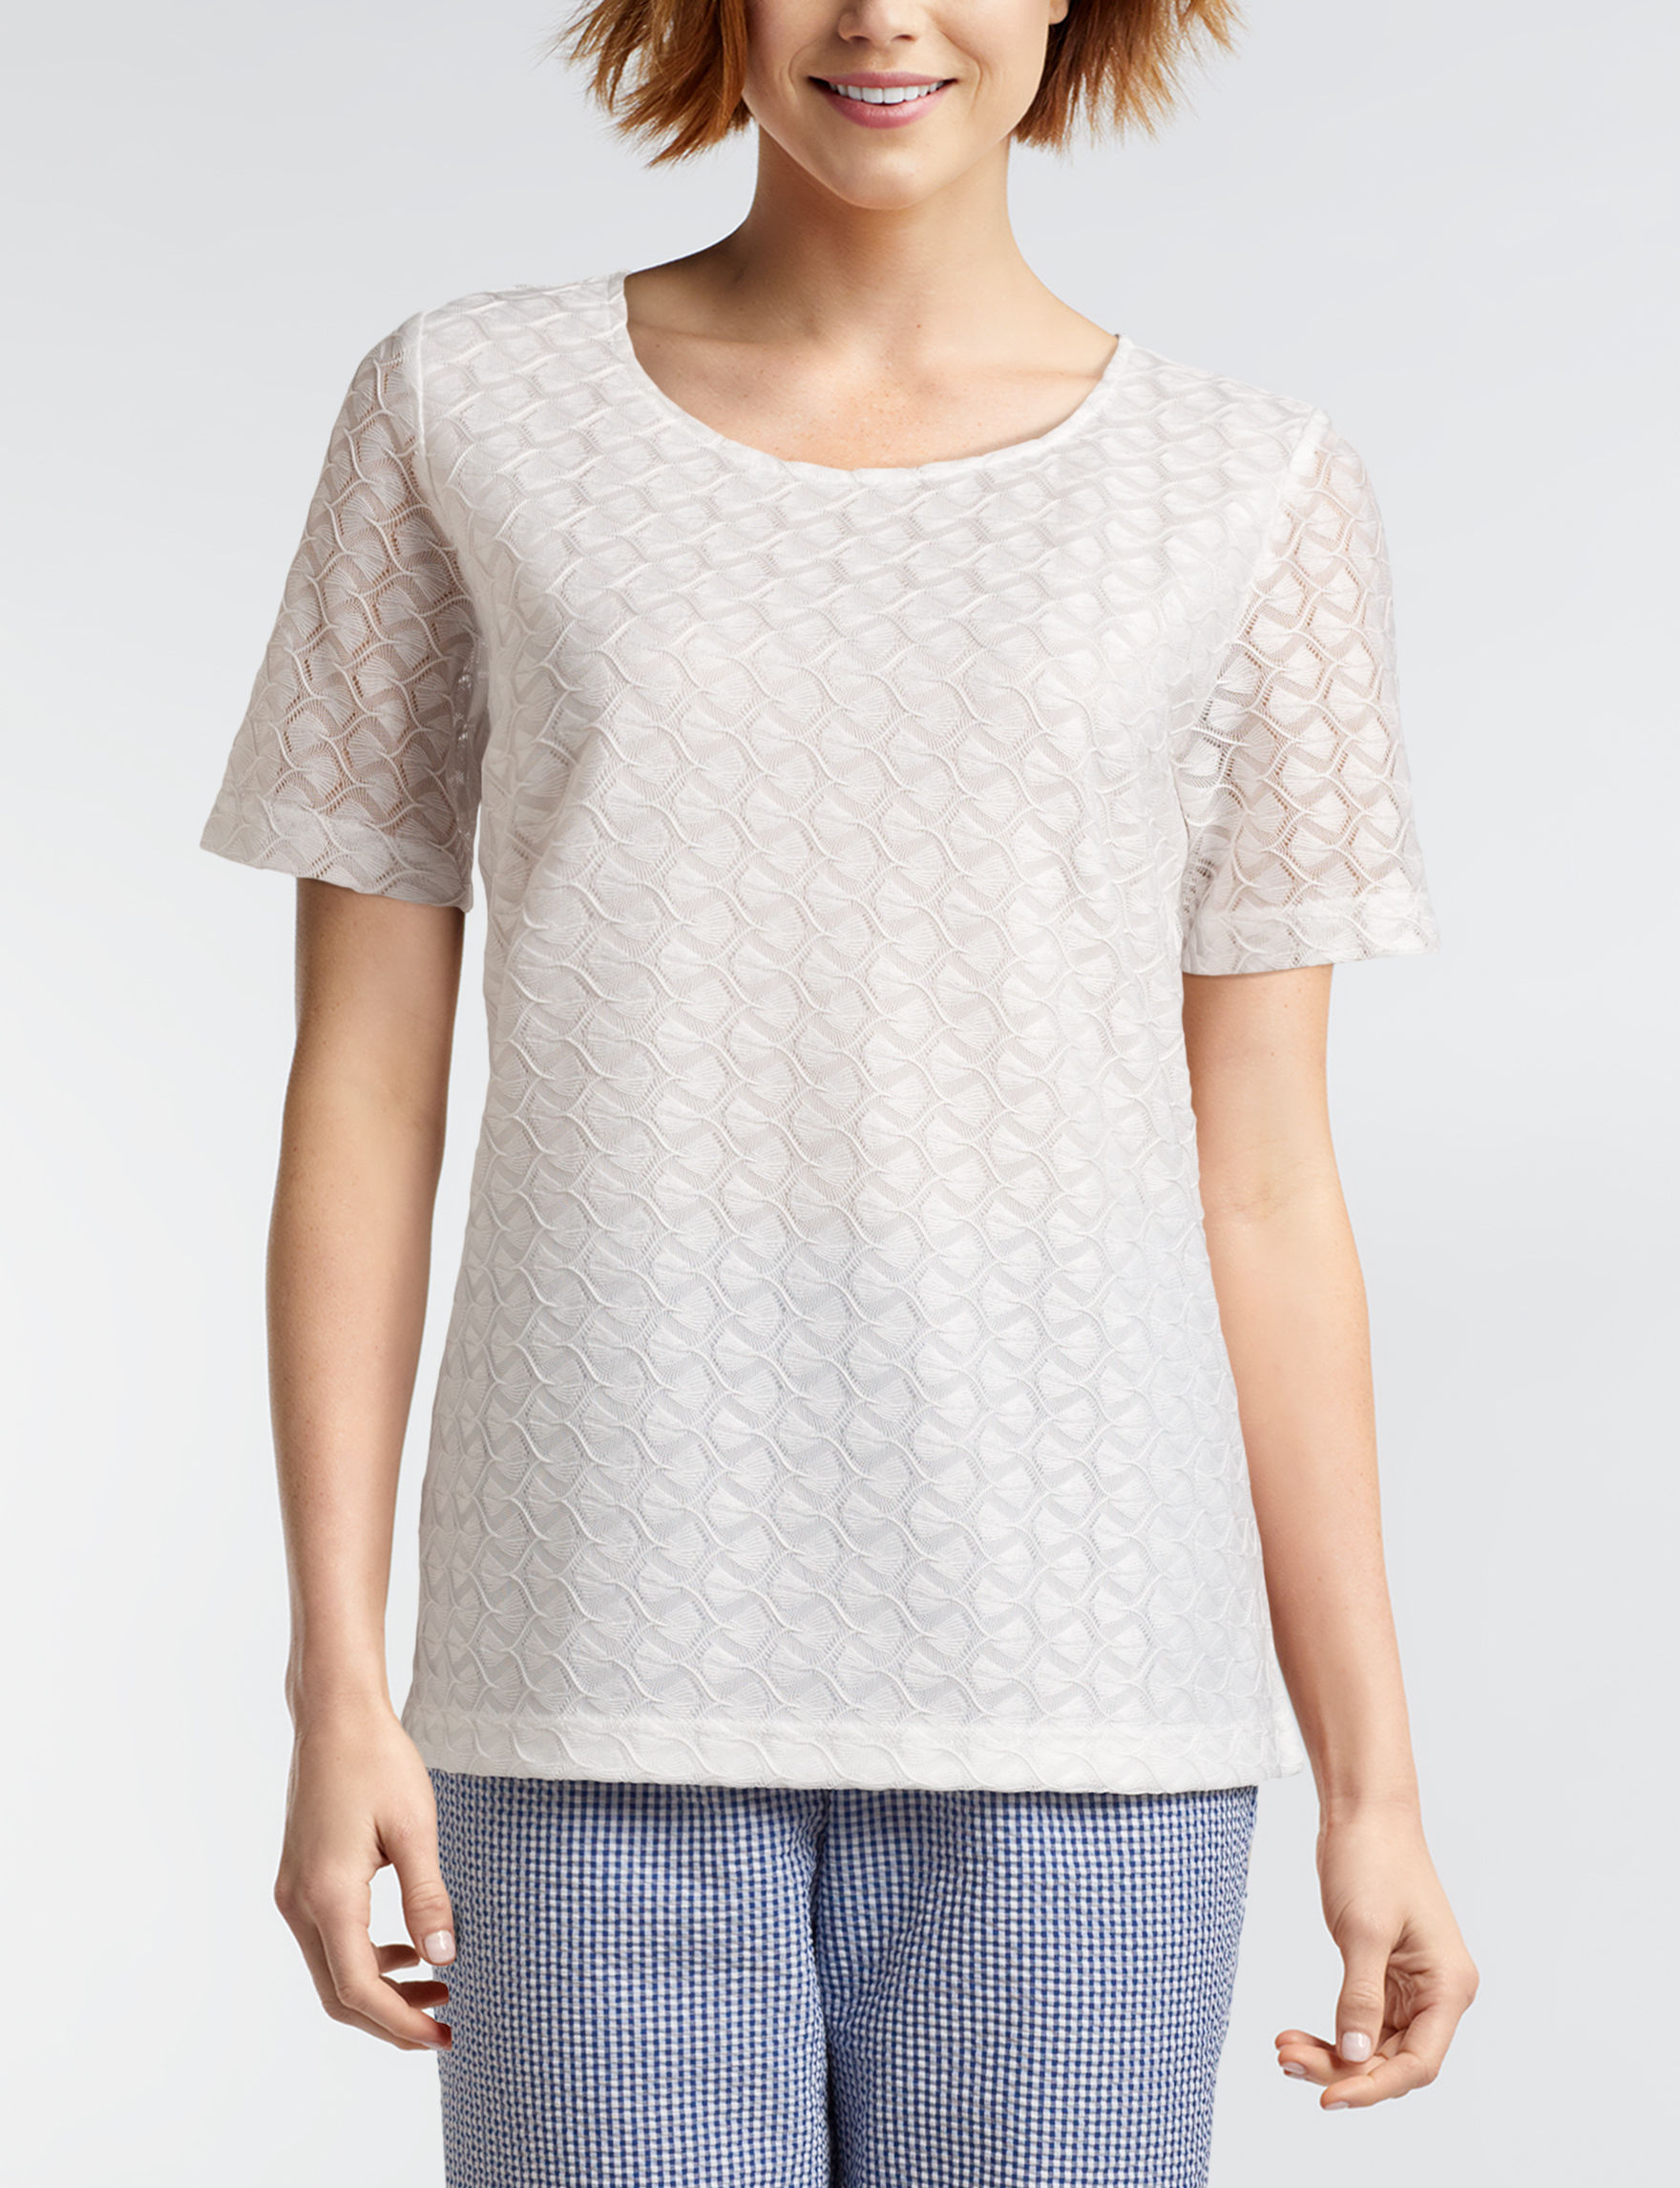 a47166efdec Cathy Daniels Plus-size Lace Knit Top